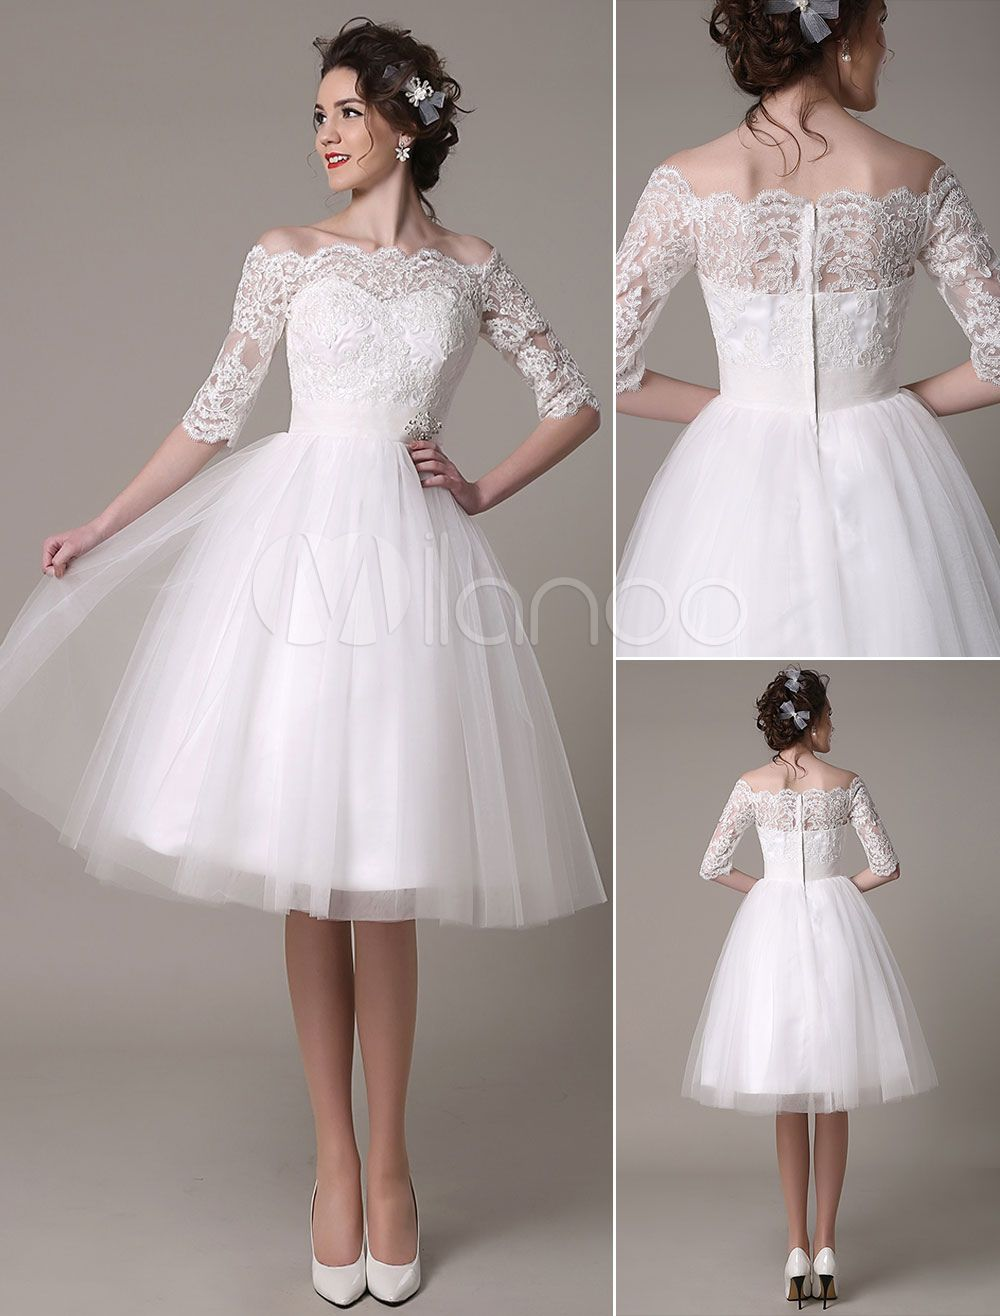 20 Amazing Short And Knee Length Wedding Dresses Mrs To Be